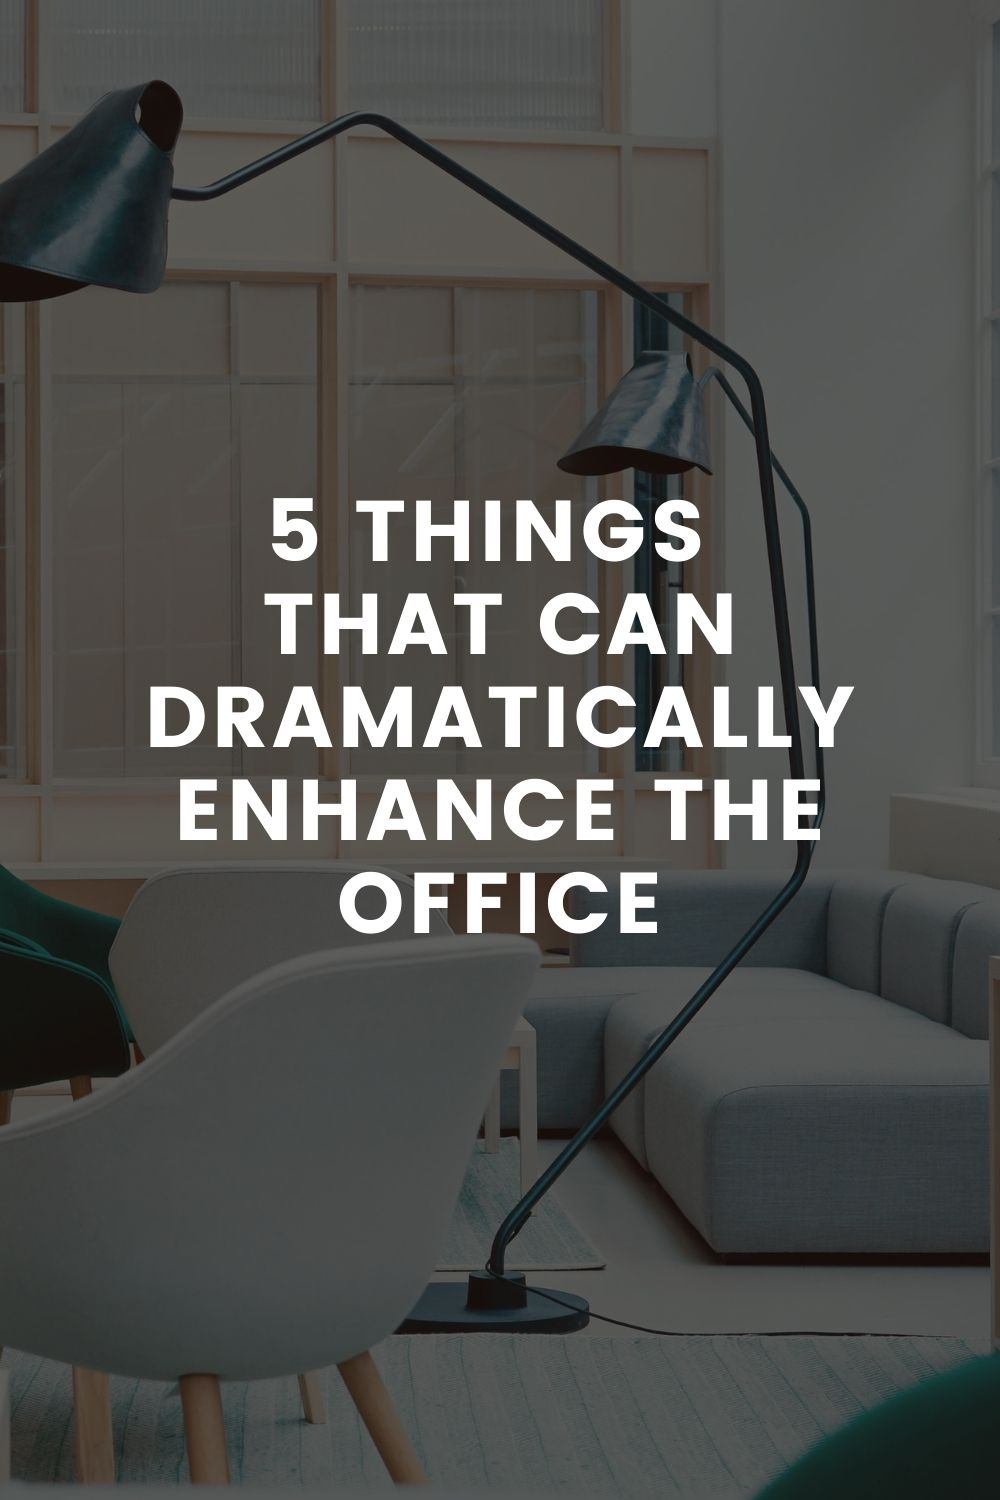 5 Things That Can Dramatically Enhance the Office